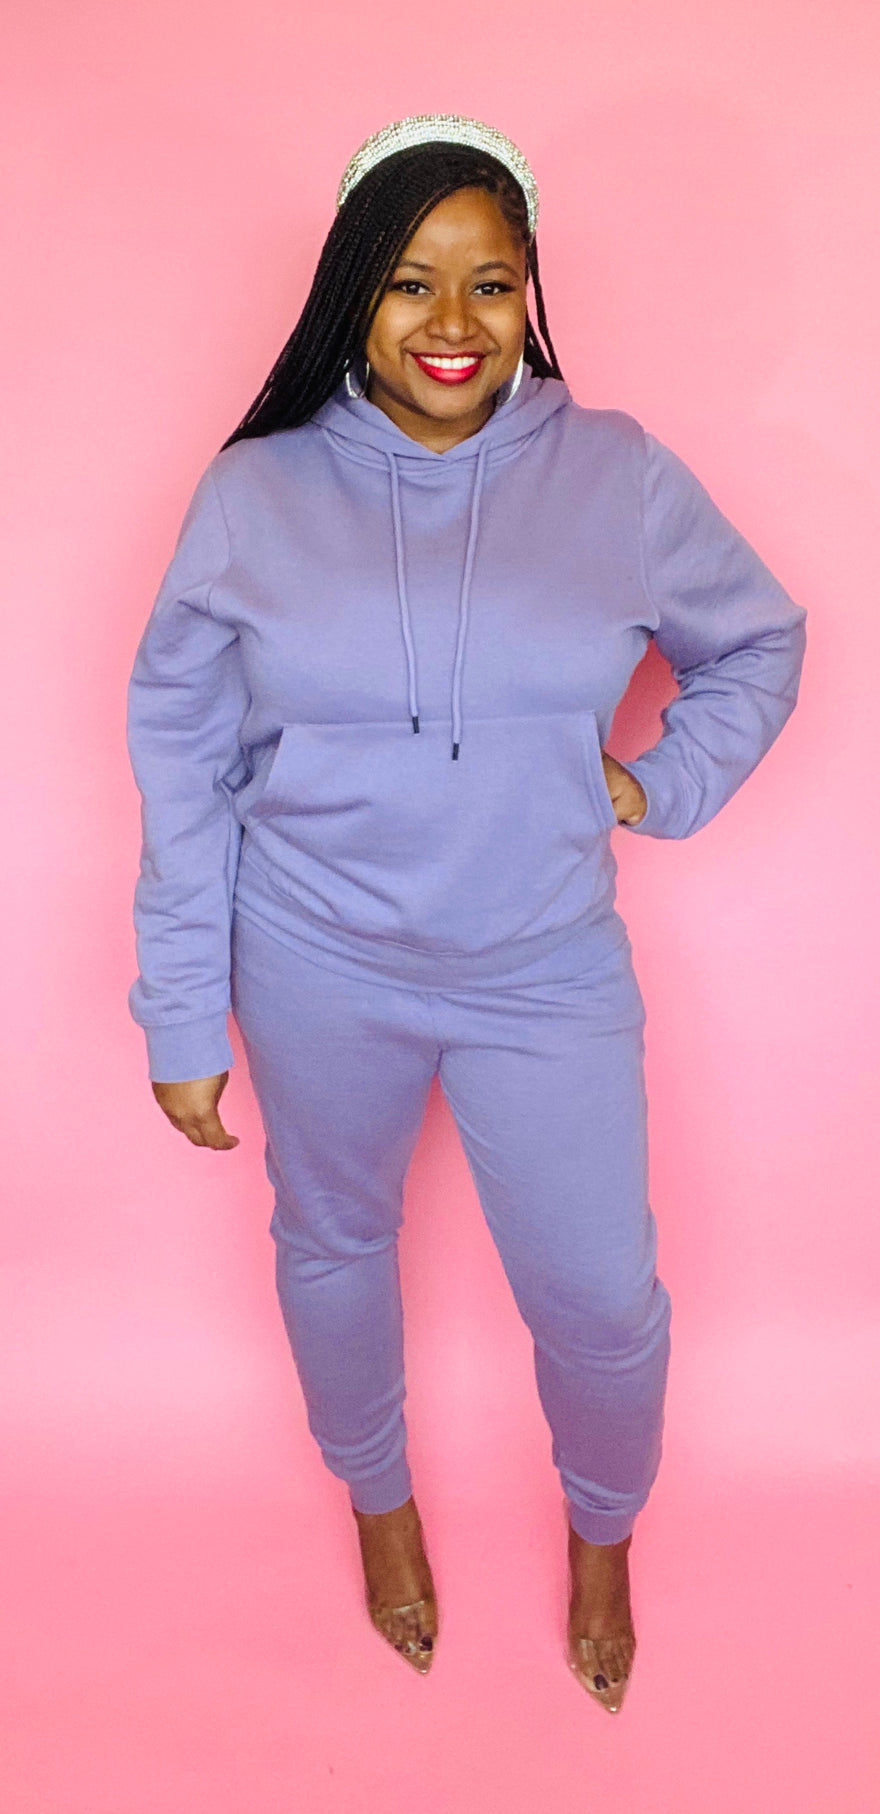 The Classic Sweatsuit (Lavender)